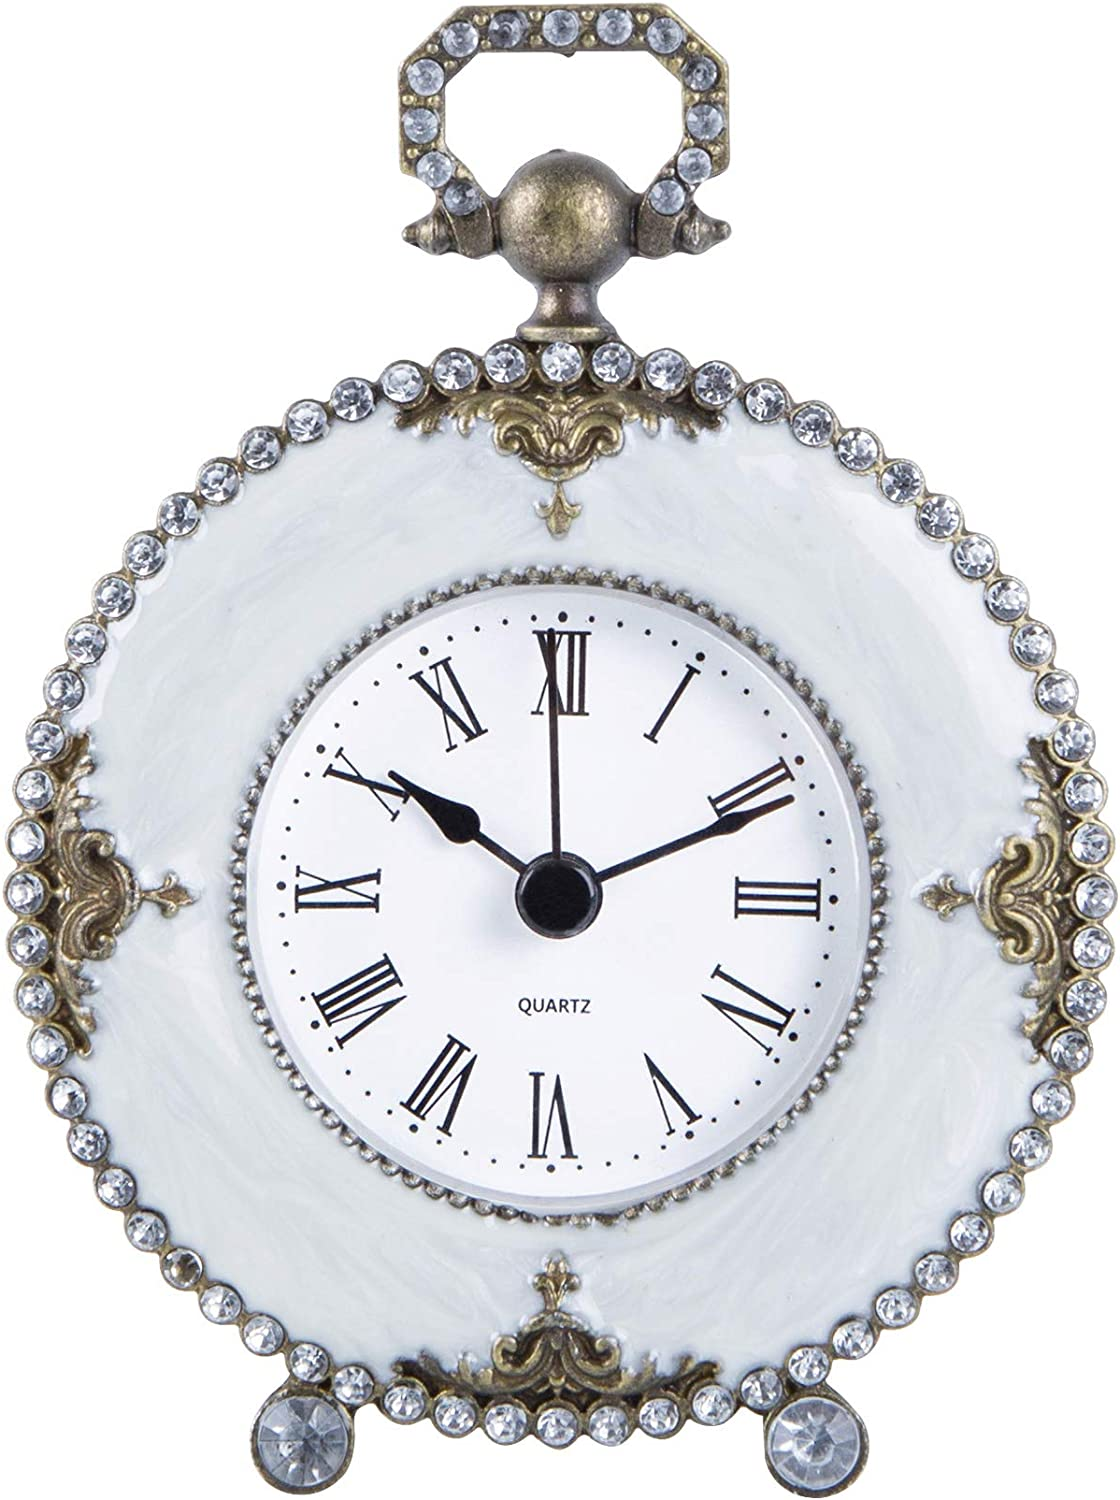 NIKKY HOME Pewter Vintage Small Quartz Table Clock 4 x 1.5 x 5.3 inch, White